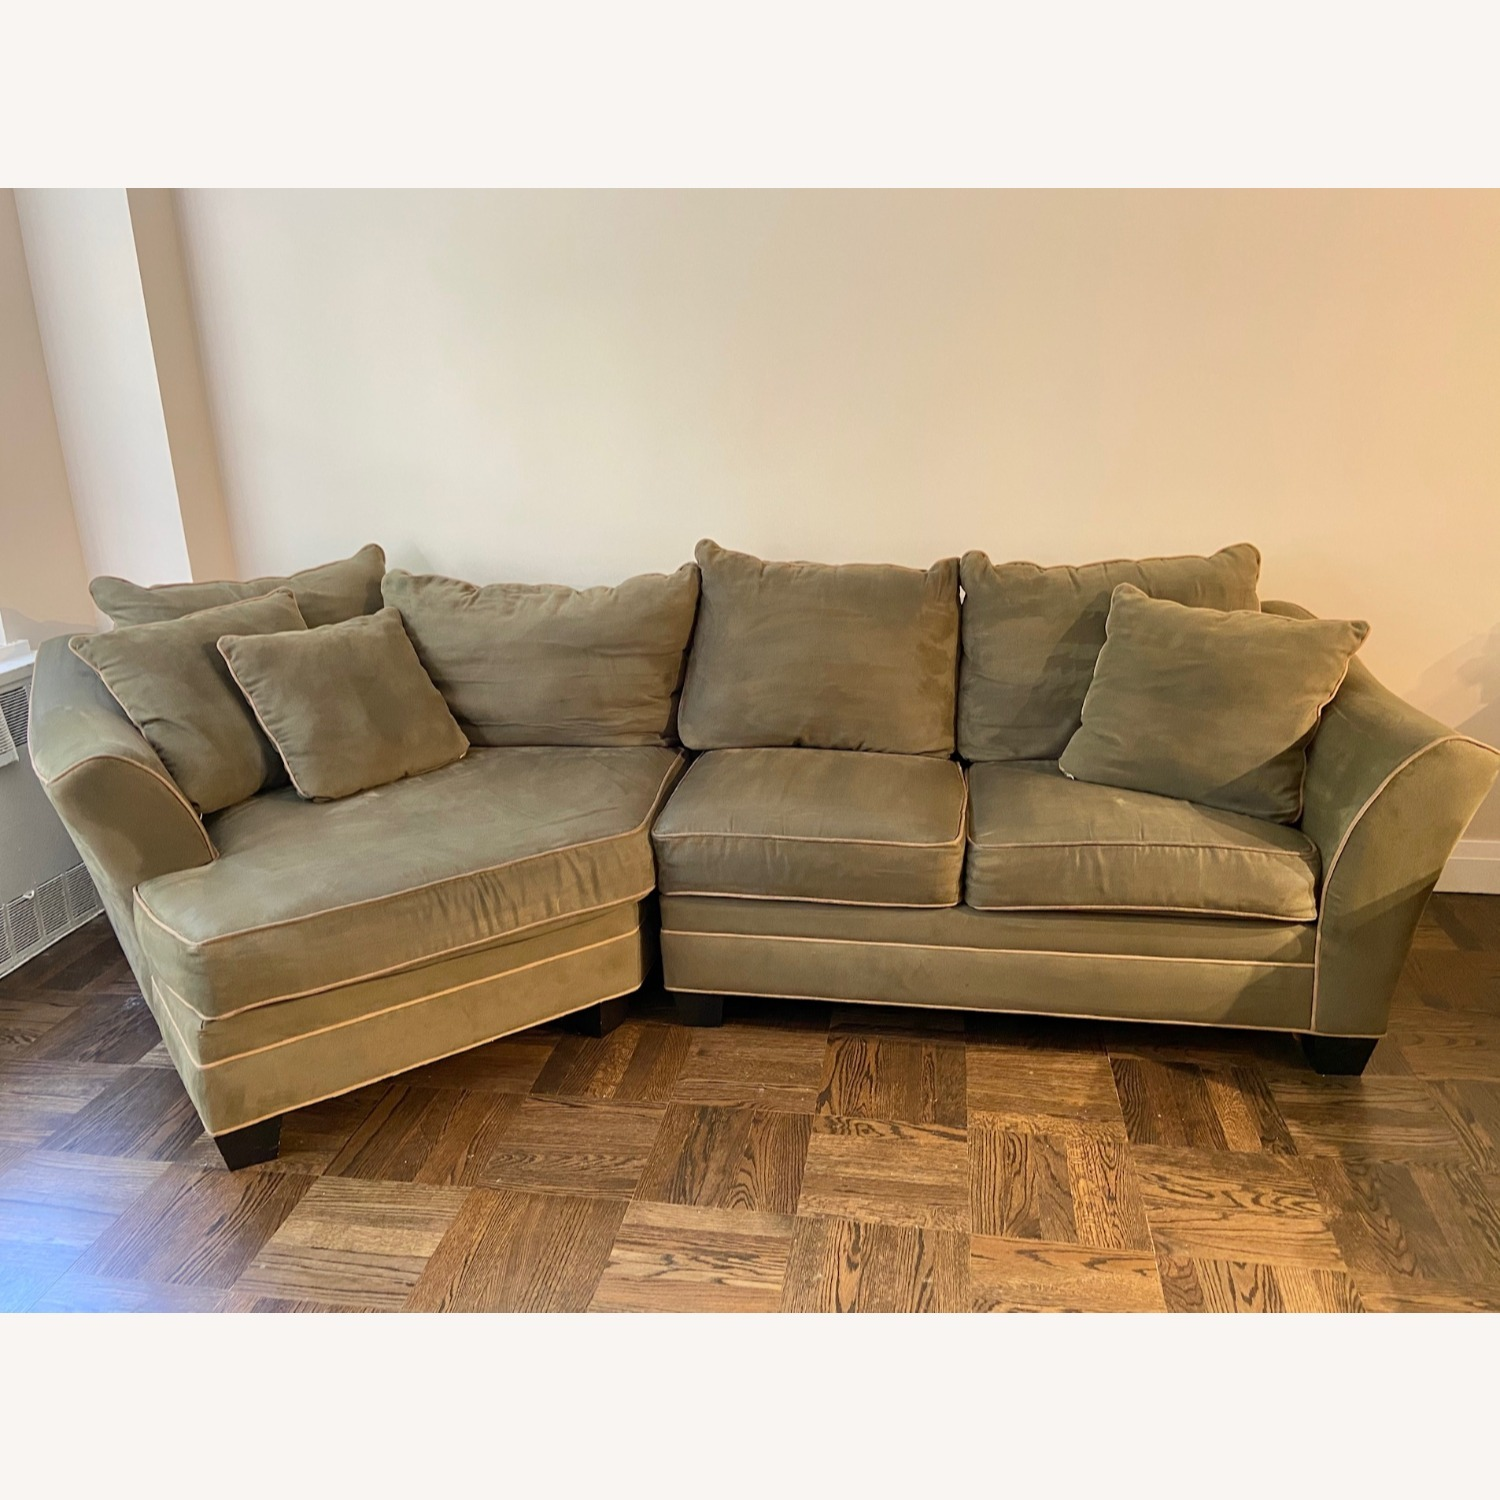 Raymour & Flanigan 2 Piece Sectional w/Cuddler - image-1